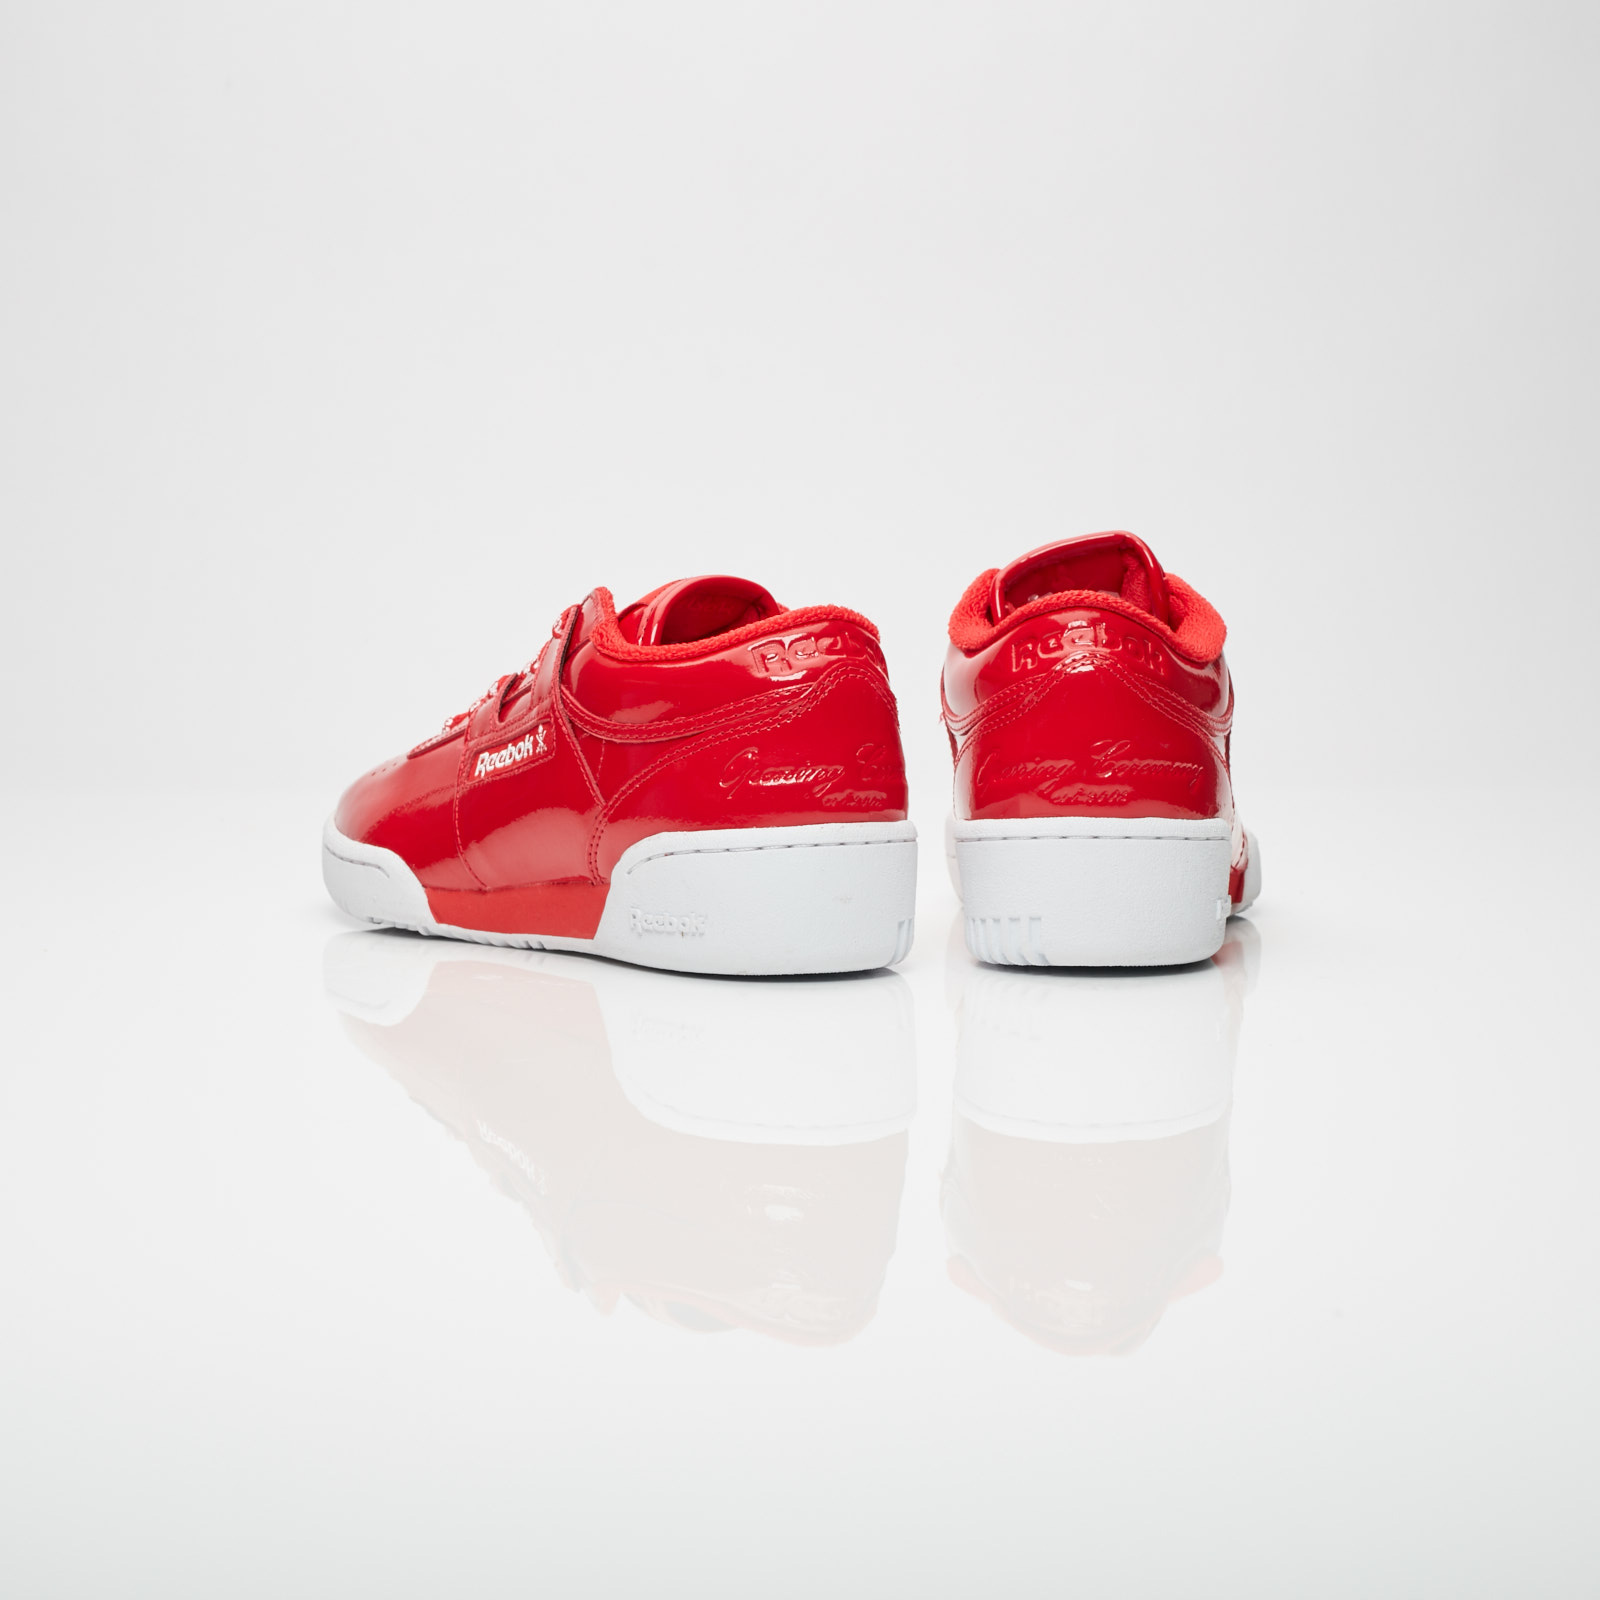 100e71249eb61 Reebok Workout Lo Clean x Opening Ceremony - Cn5698 - Sneakersnstuff ...